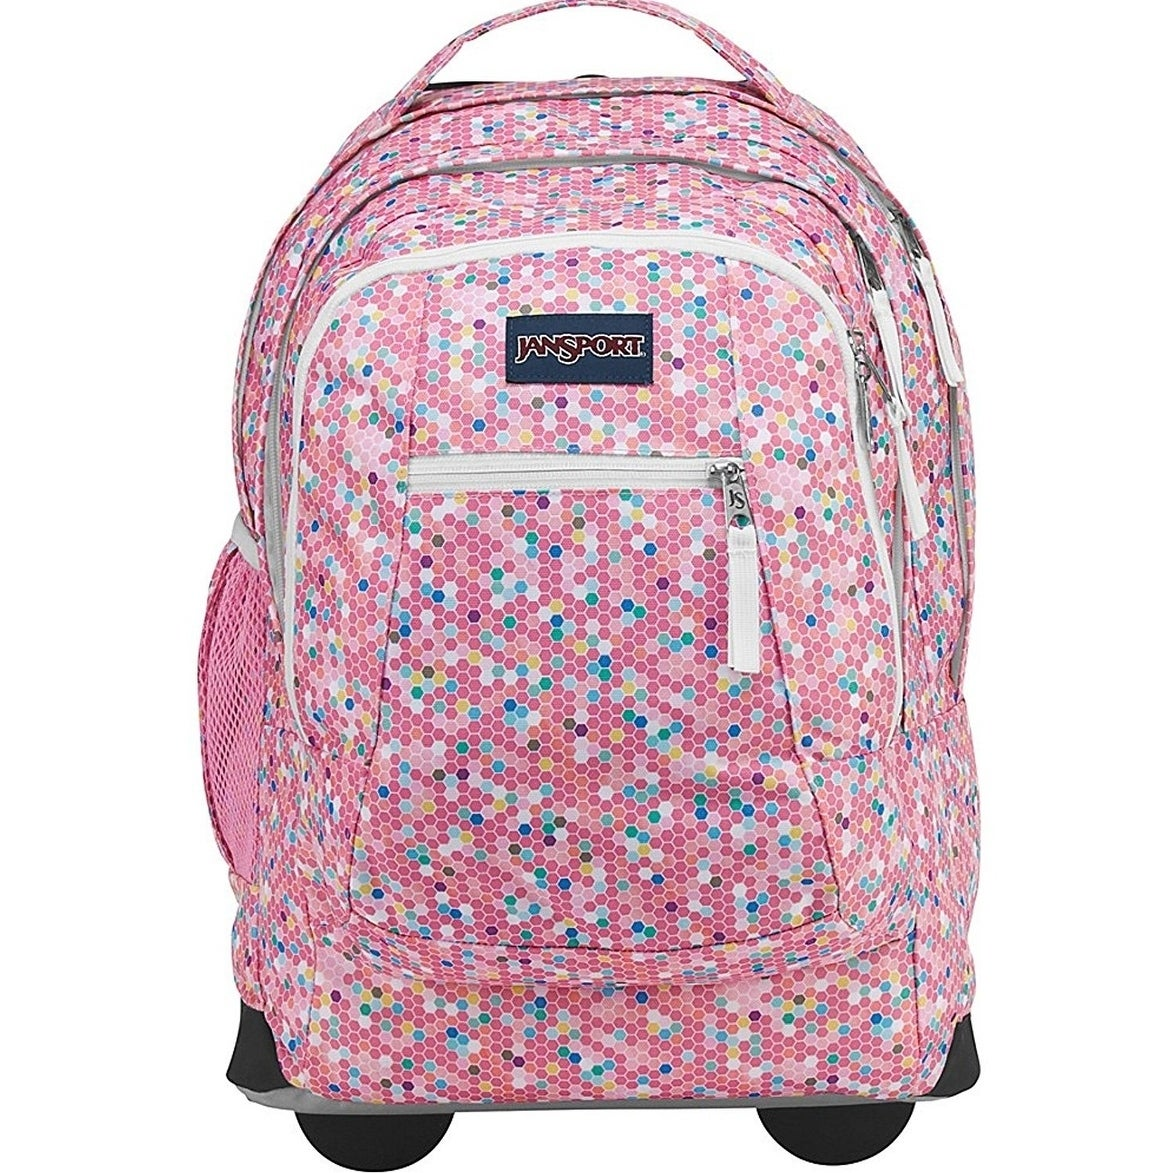 Buy Jansport Backpack Canada Sabis Bulldog Athletics